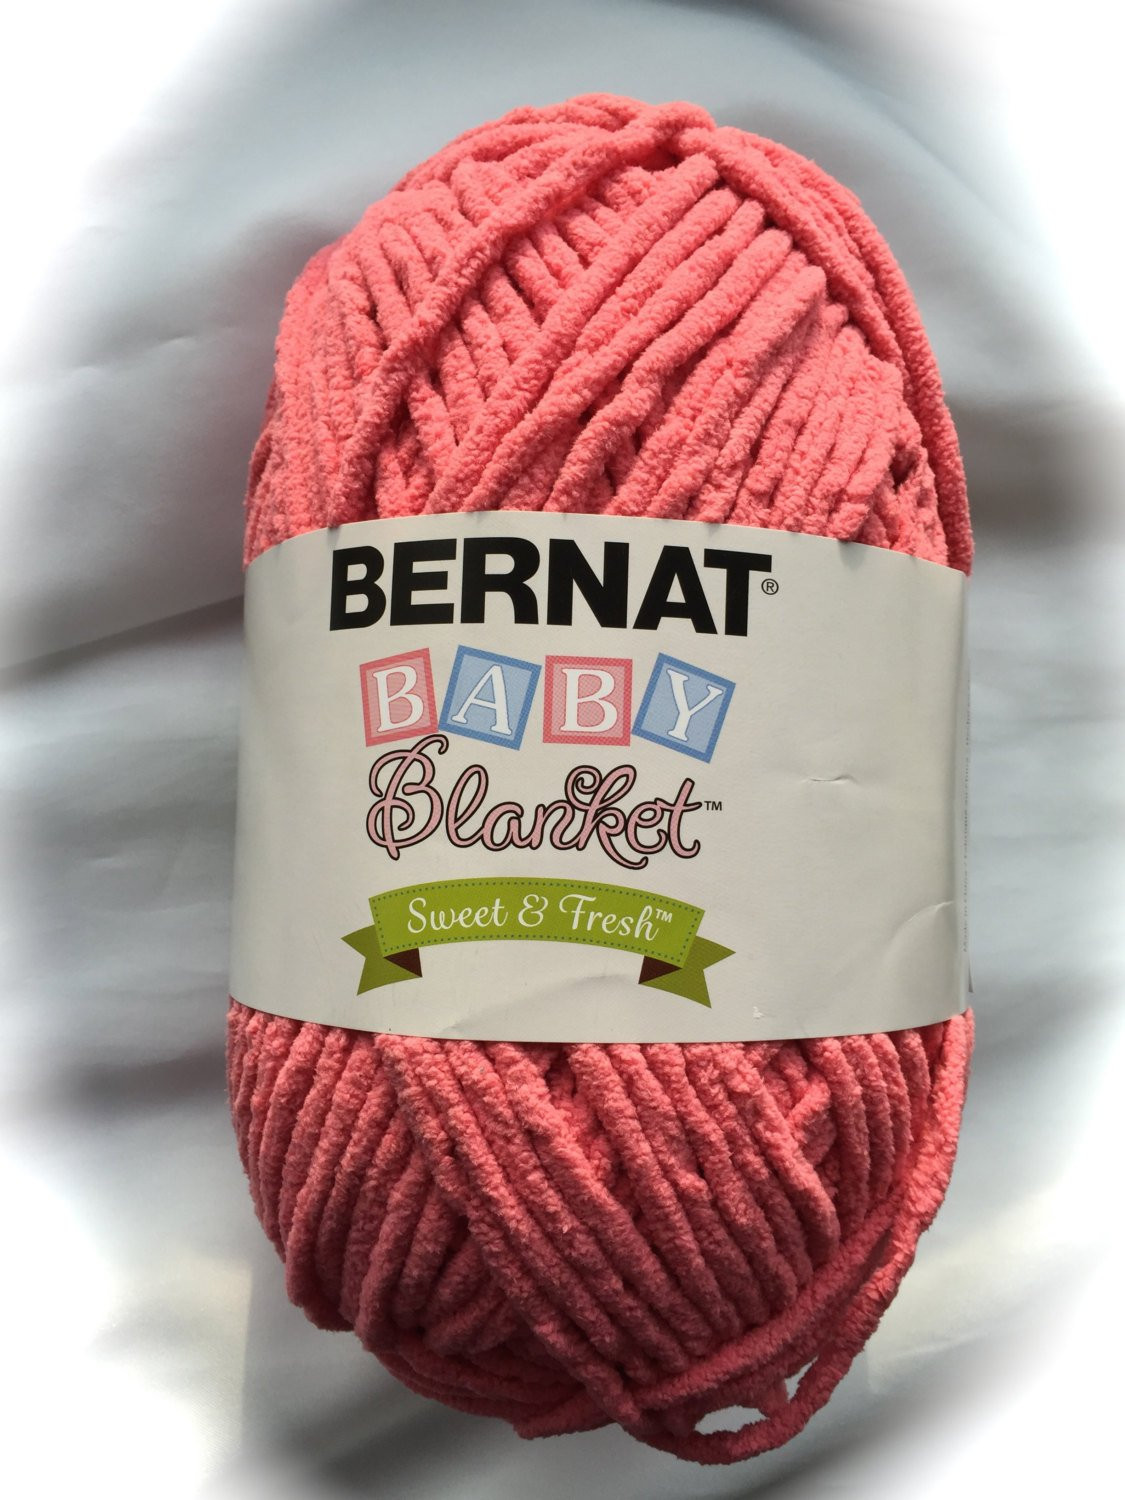 Bernat Blanket Yarn Fresh Coral Crocus Bernat Baby Blanket Sweet & Fresh Yarn Big Of Beautiful 42 Models Bernat Blanket Yarn